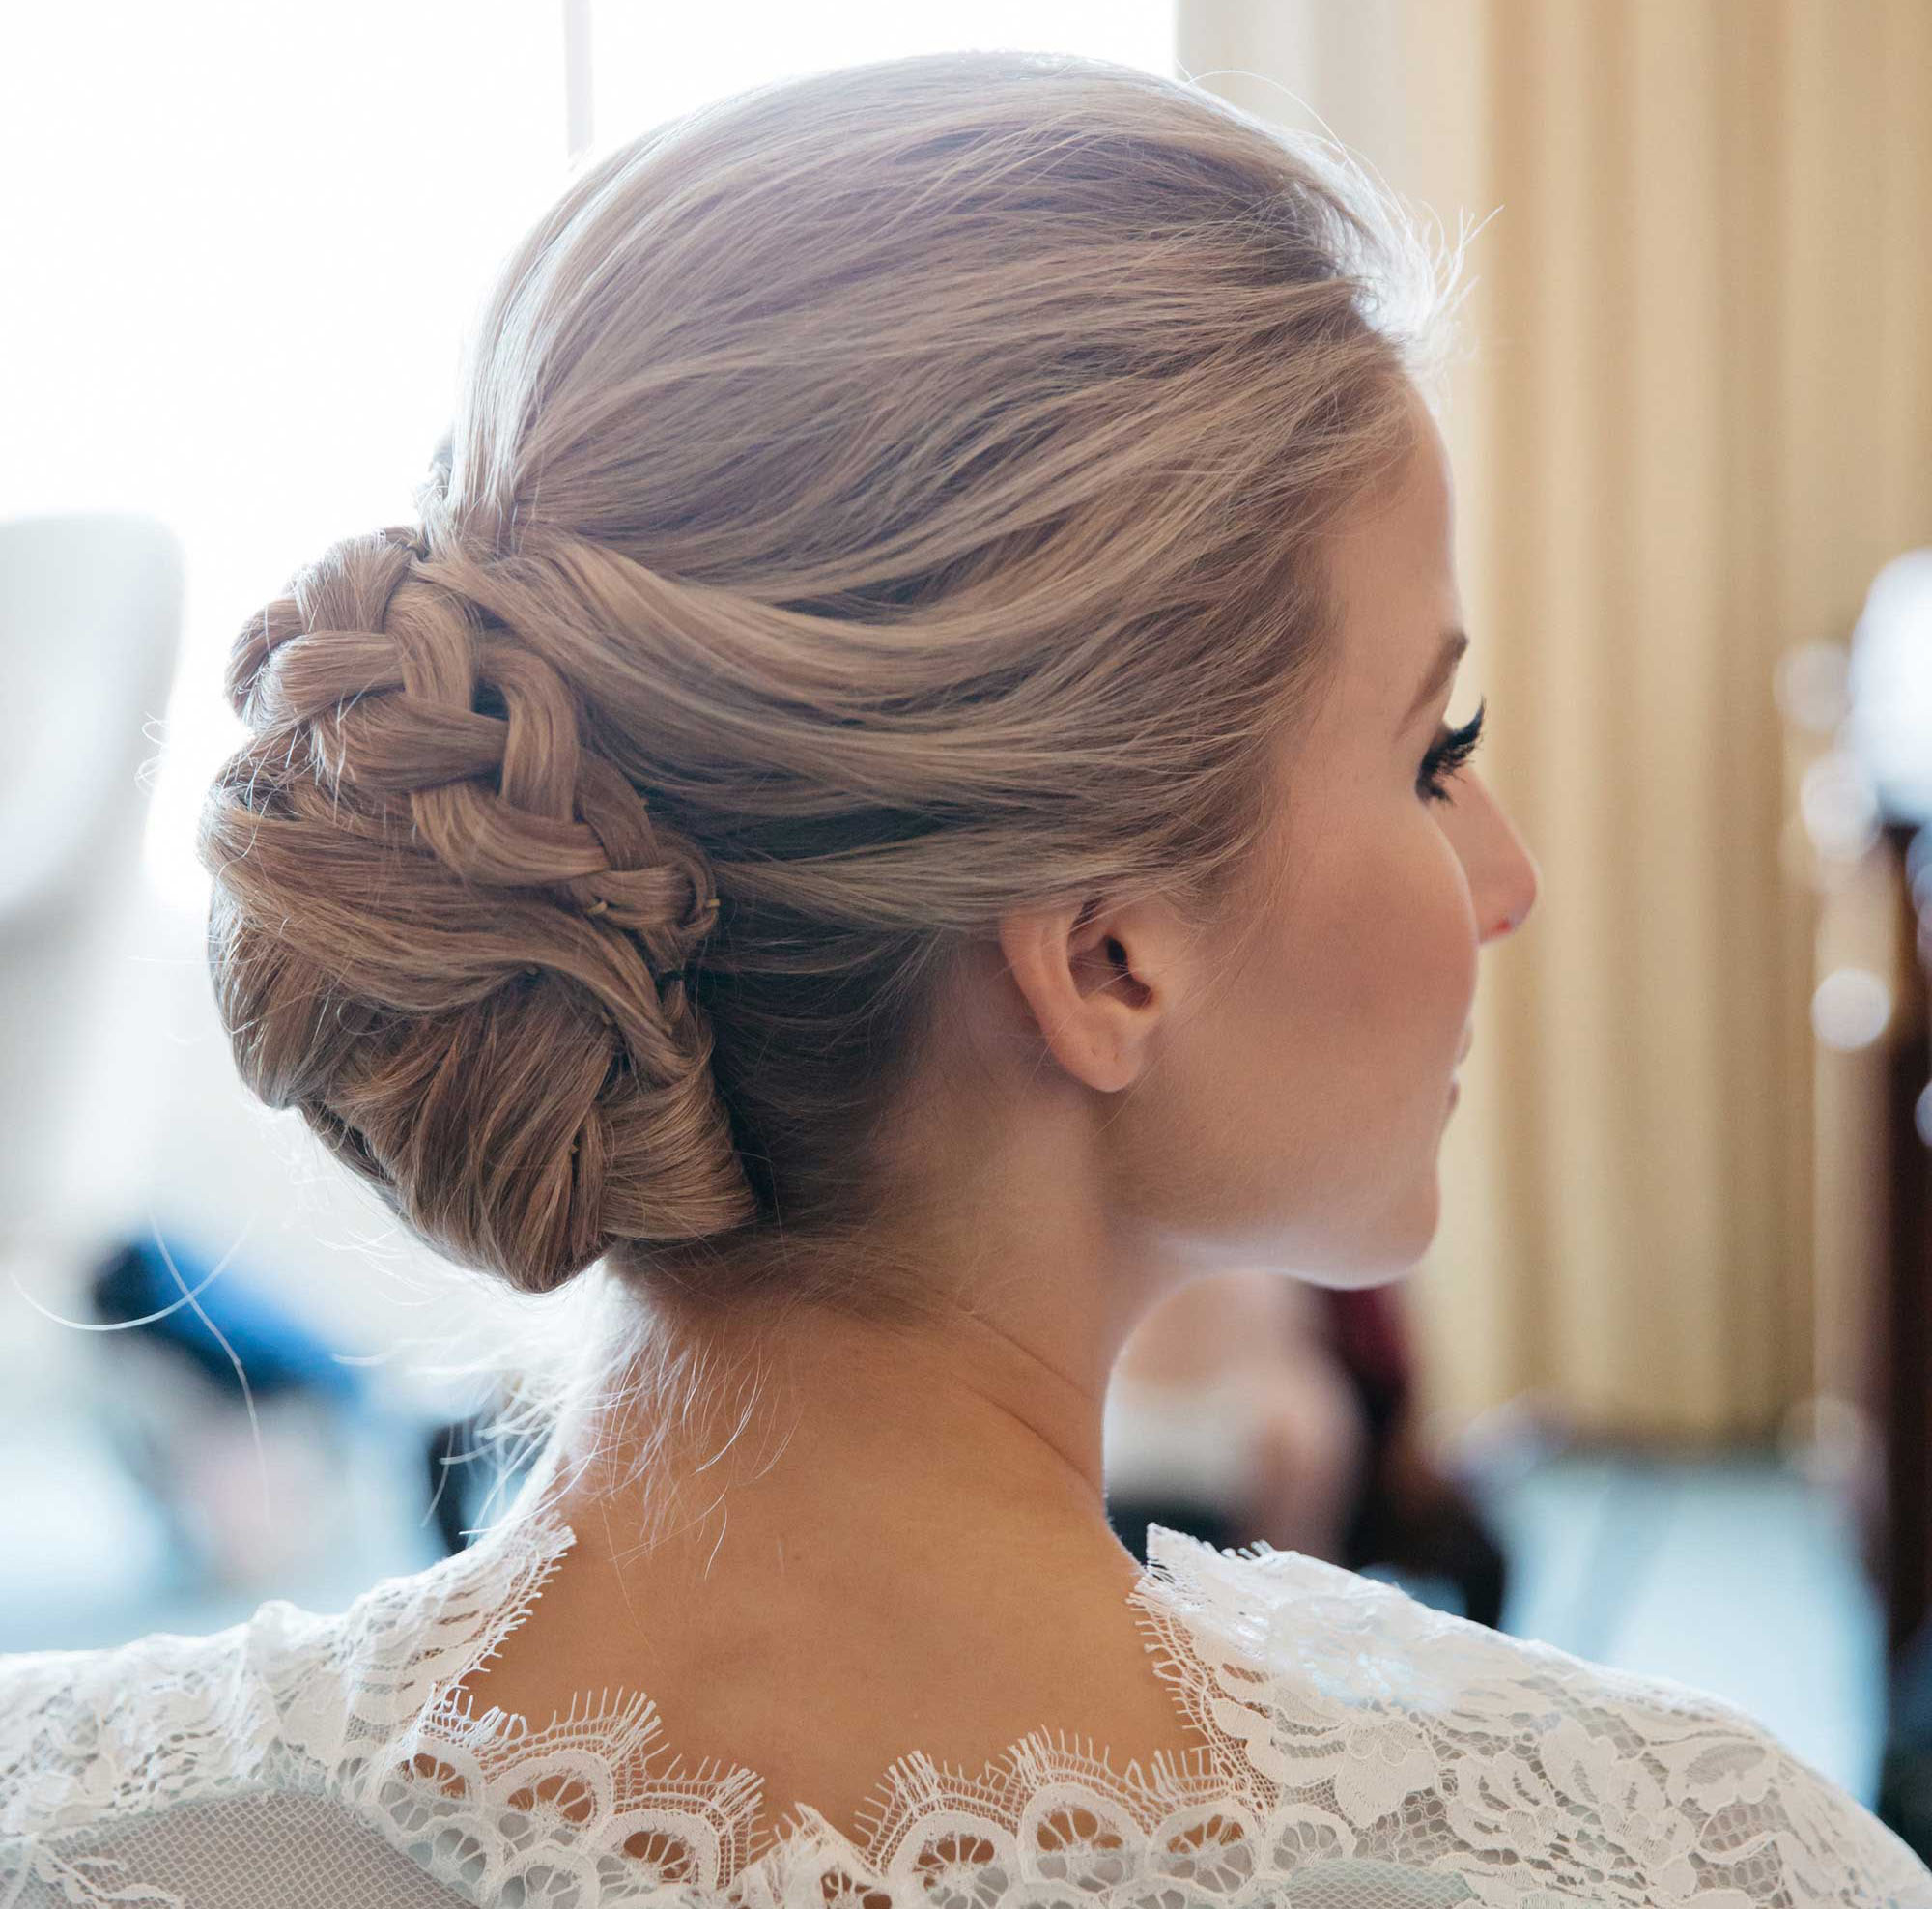 Awesome Braided Hairstyles 5 Ideas For Your Wedding Look Inside Weddings Short Hairstyles Gunalazisus